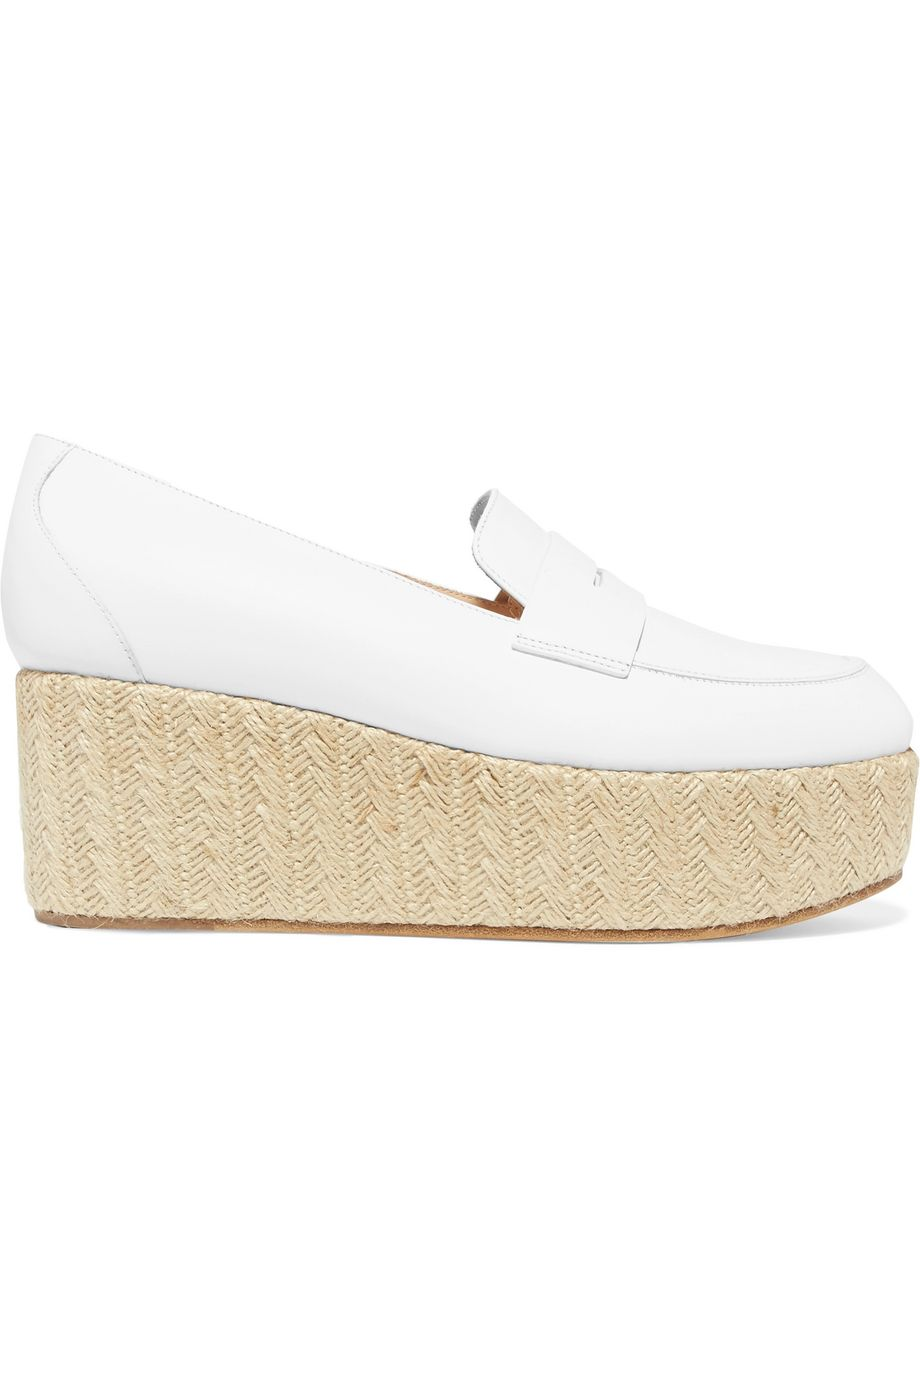 Gabriela Hearst Brucco leather and jute platform loafers